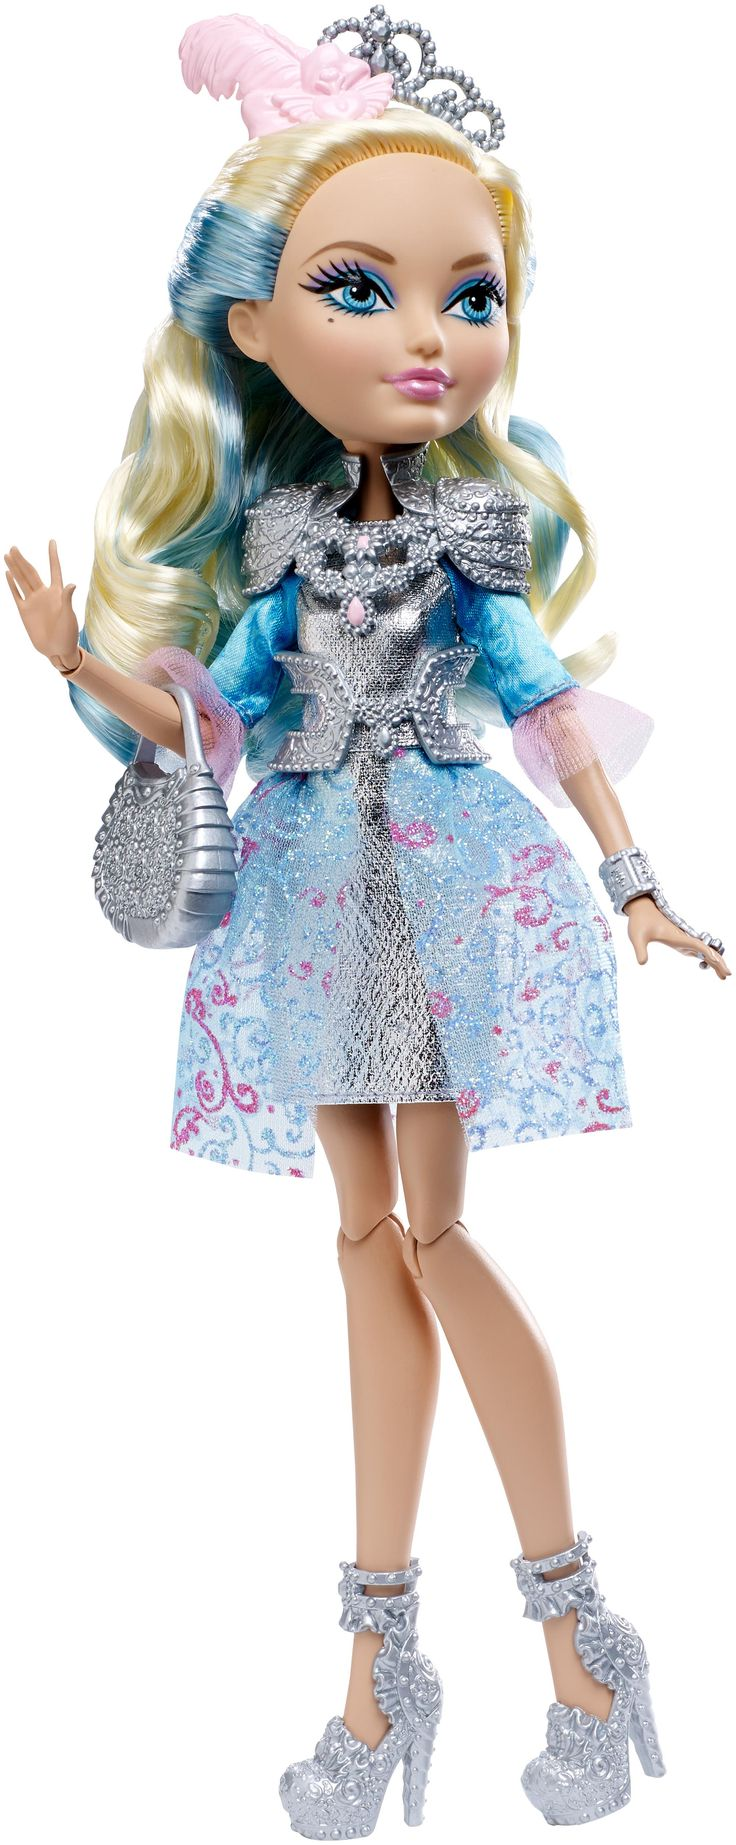 Darling Charming Ever After High Doll, 2015 ($20 at Shop.Mattel.com. I bought her on sale for $16.) - This is the debut Darling doll. She is the daughter of King Charming, twin sister of Dexter Charming and younger sister of Daring Charming.